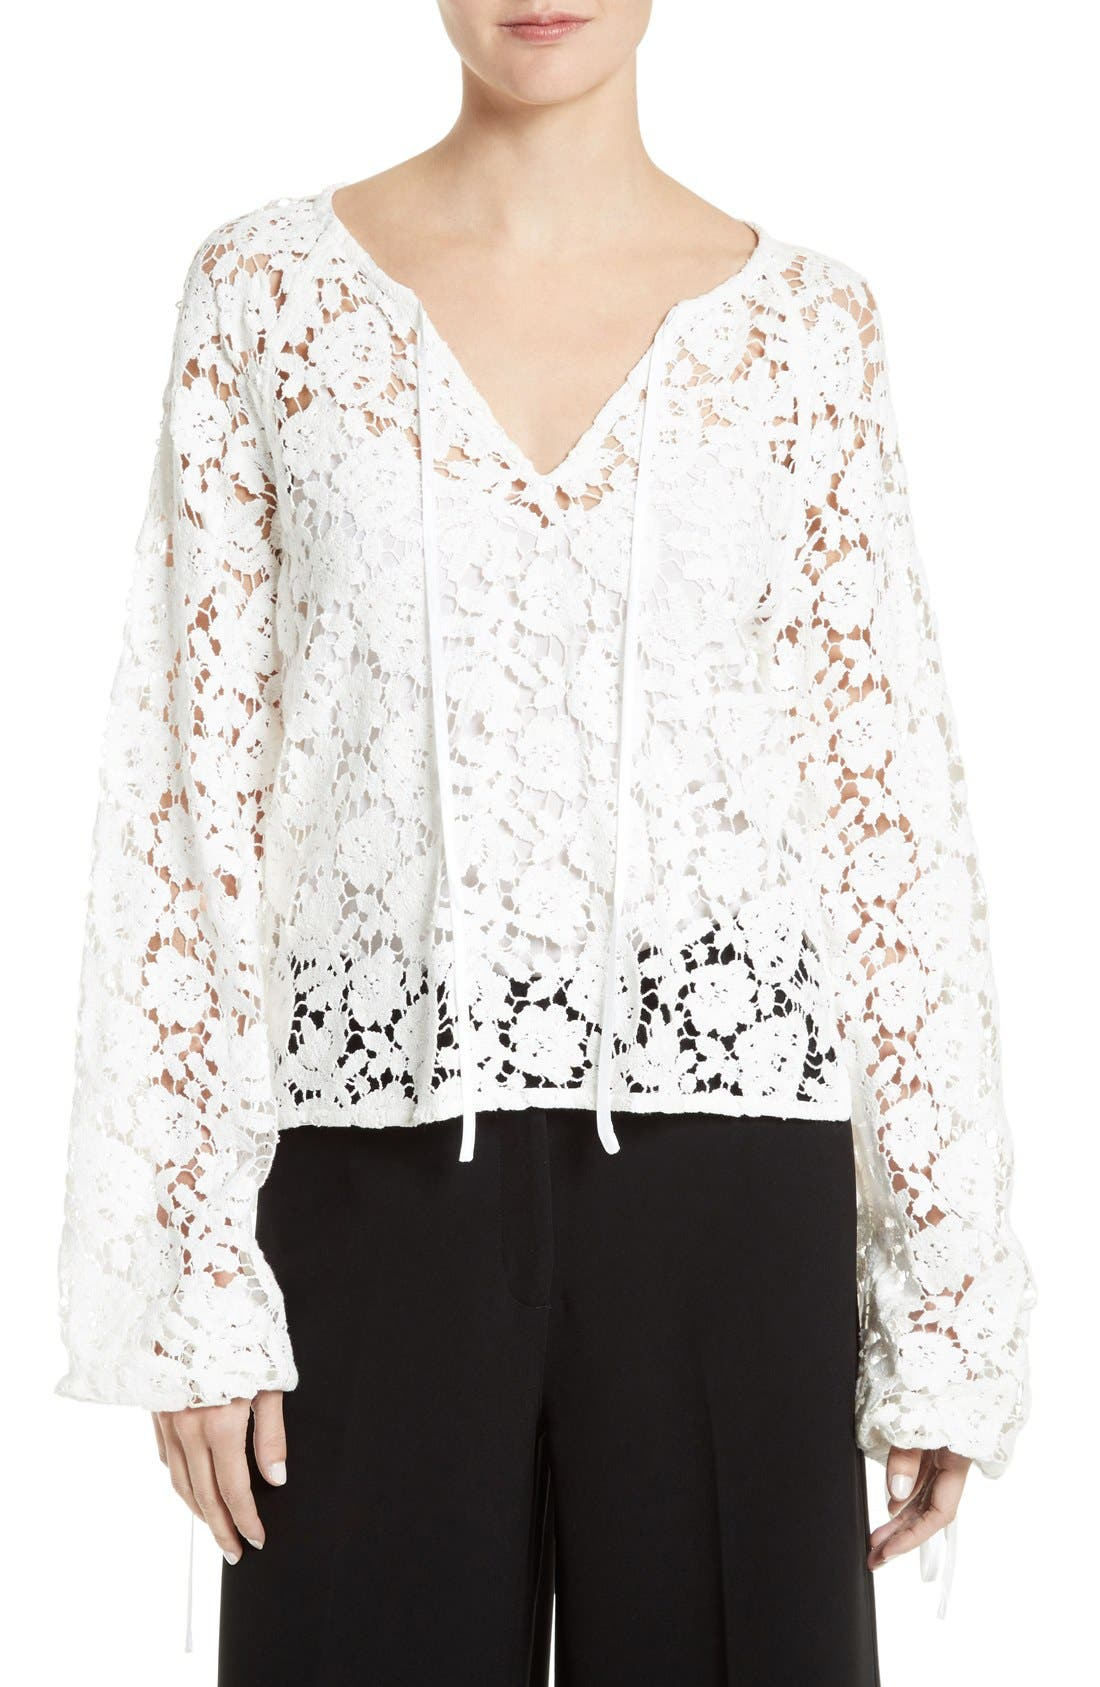 Elizabeth and James Chantalle Lace Top